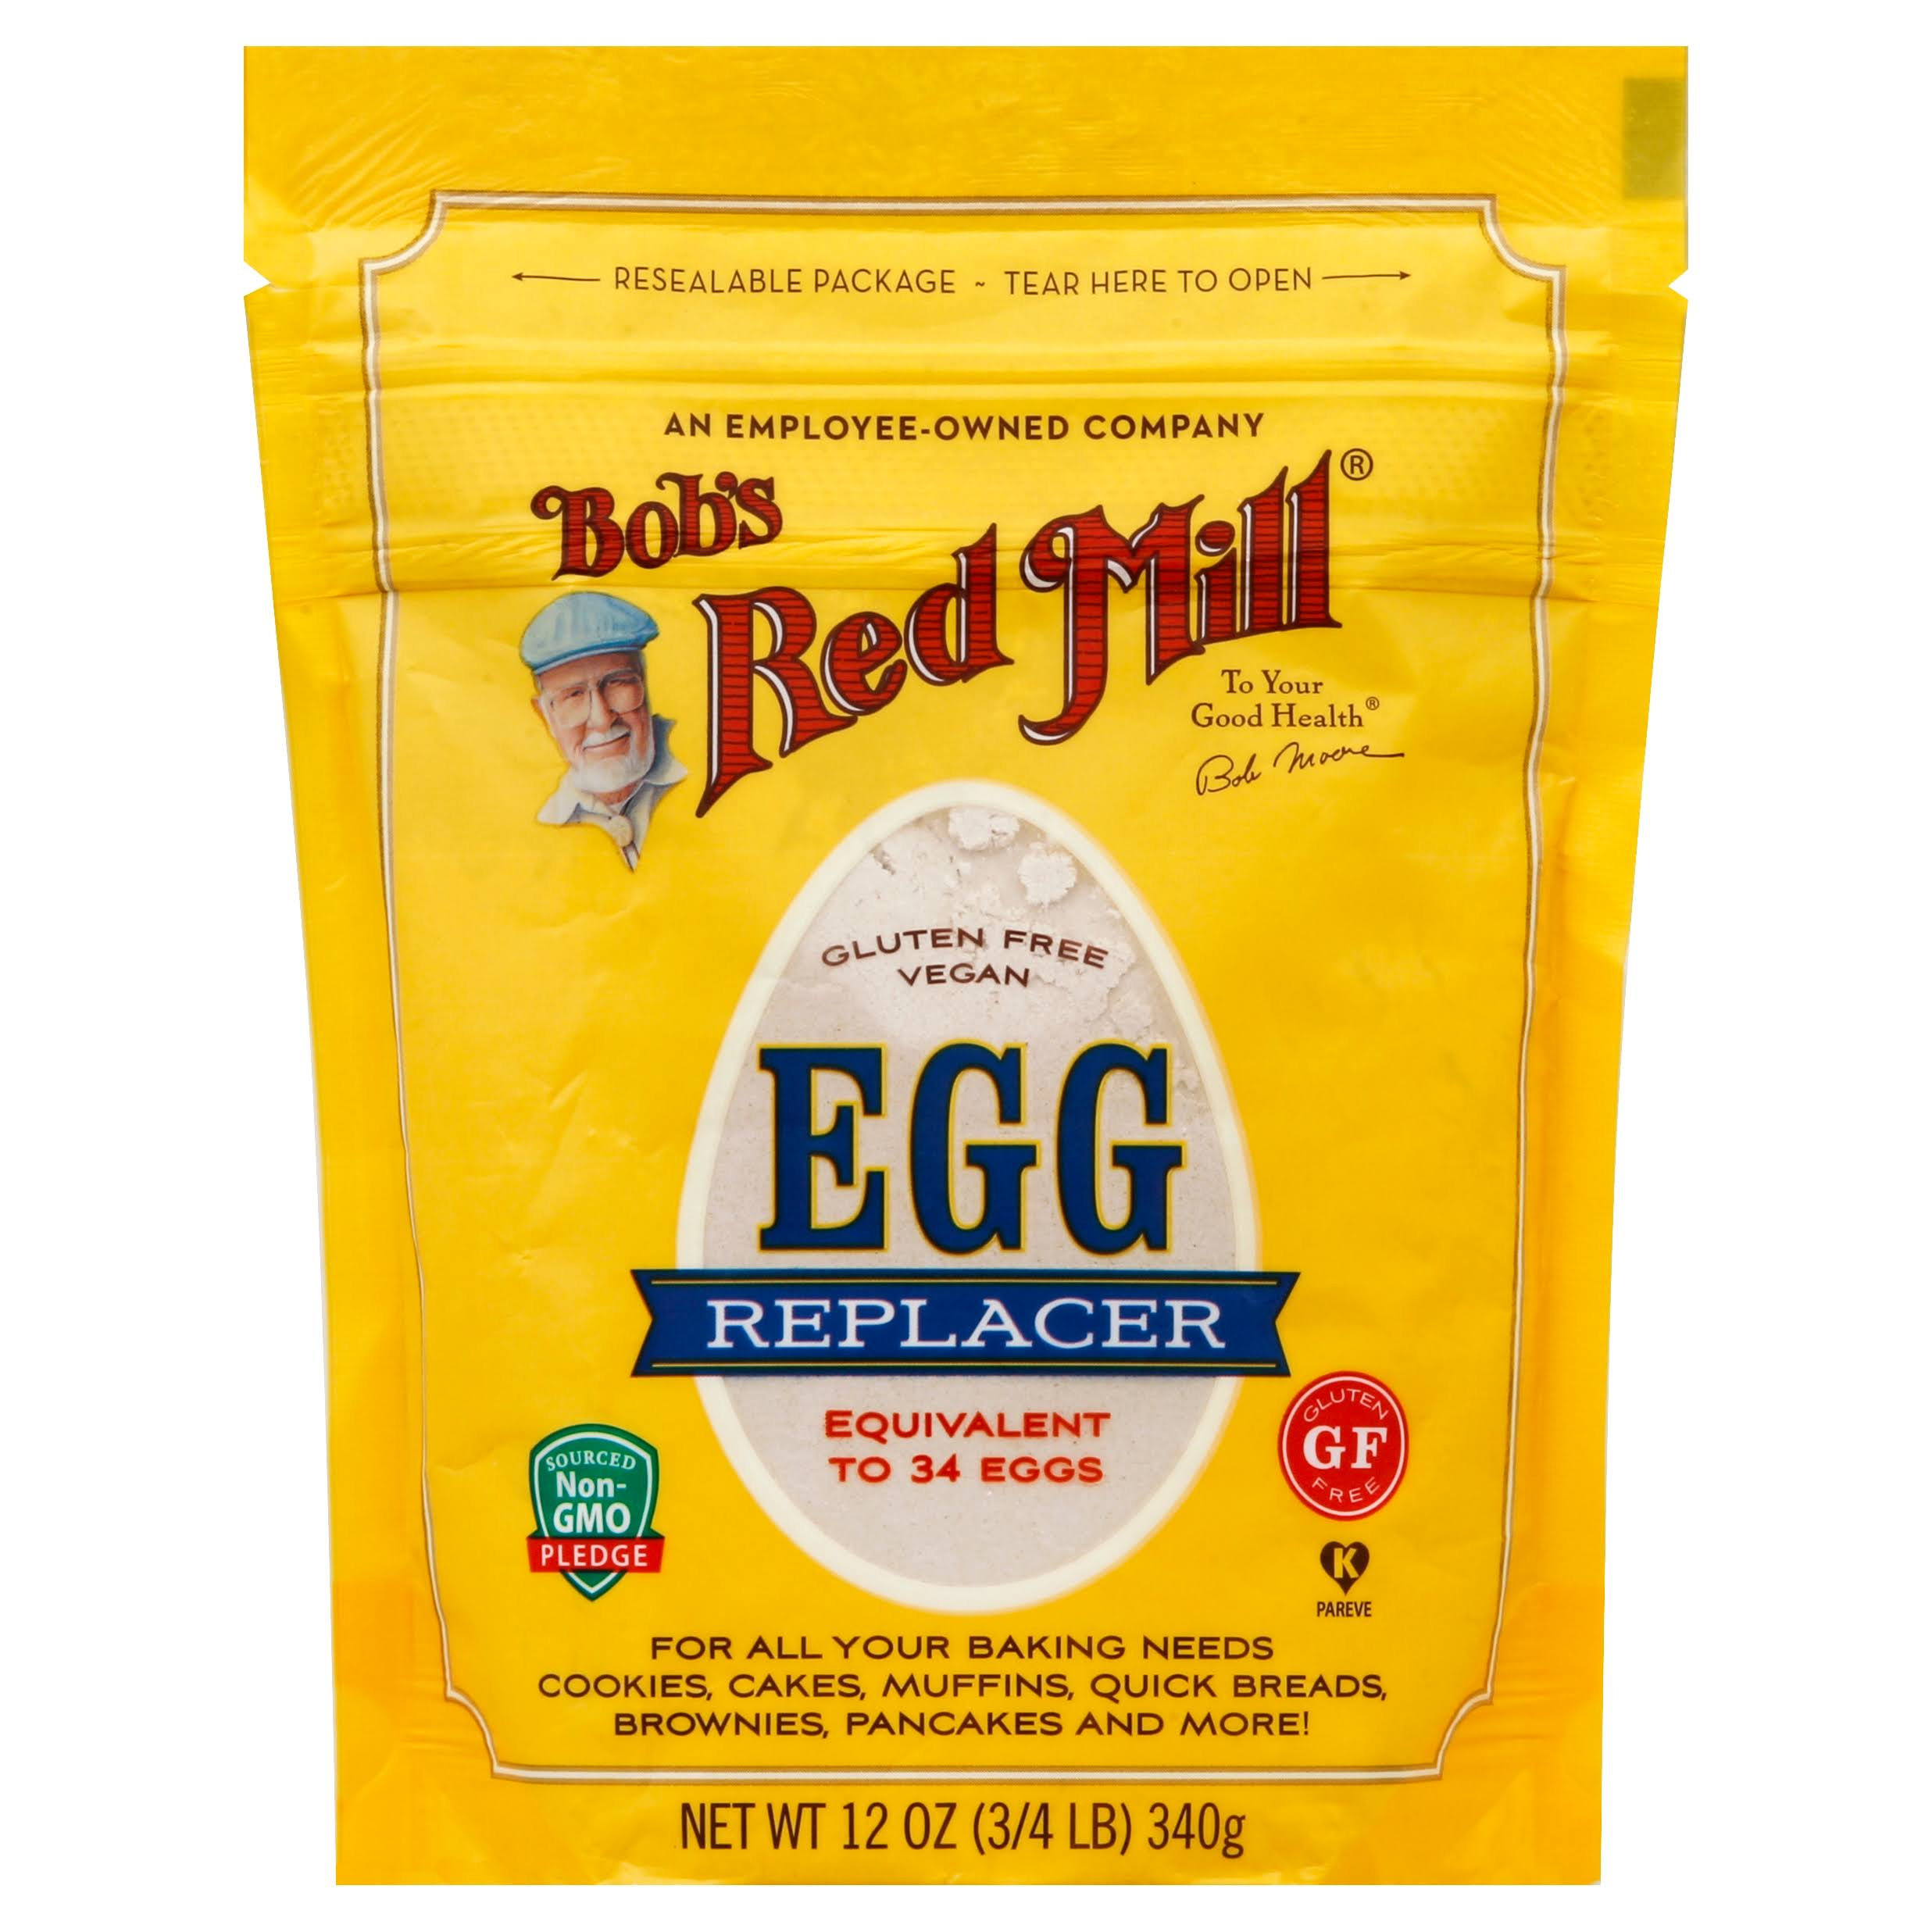 Bob's Red Mill Egg Replacer - Gluten Free, 12oz